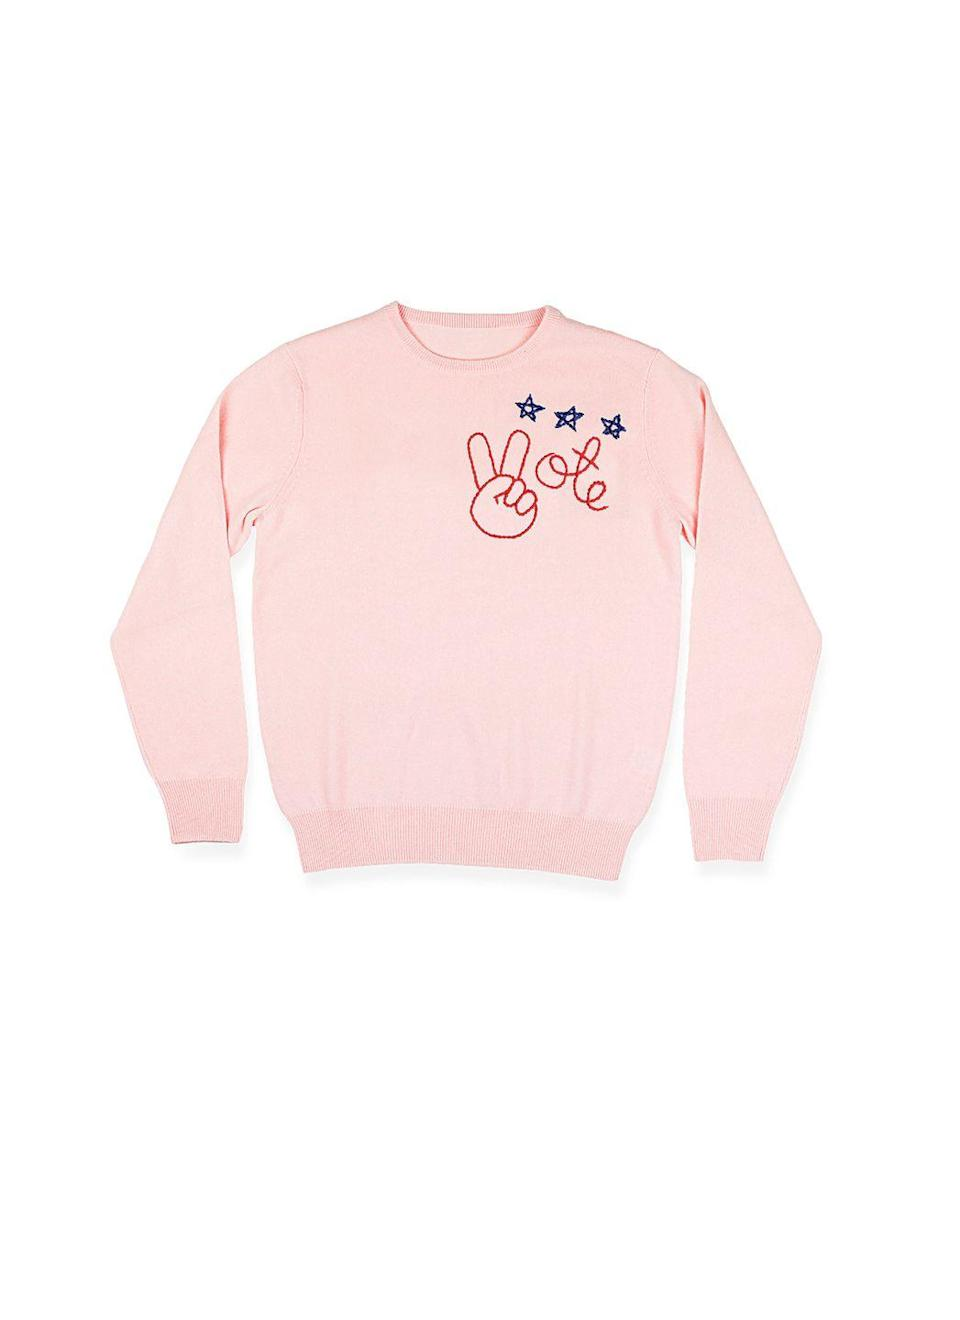 """<p>You can go to the polls in style rocking this hand-embroidered cashmere sweater. And a bonus? The brand is donating 10 percent of sales to <a href=""""https://www.higherheightsforamerica.org/"""" rel=""""nofollow noopener"""" target=""""_blank"""" data-ylk=""""slk:Higher Heights for America"""" class=""""link rapid-noclick-resp"""">Higher Heights for America</a>, which works to strengthen and expand Black women's political presence. </p><p><em>Lingua Franca</em>, $380</p><p><a class=""""link rapid-noclick-resp"""" href=""""https://linguafranca.nyc/collections/i-am-a-voter"""" rel=""""nofollow noopener"""" target=""""_blank"""" data-ylk=""""slk:SHOP NOW"""">SHOP NOW</a></p>"""